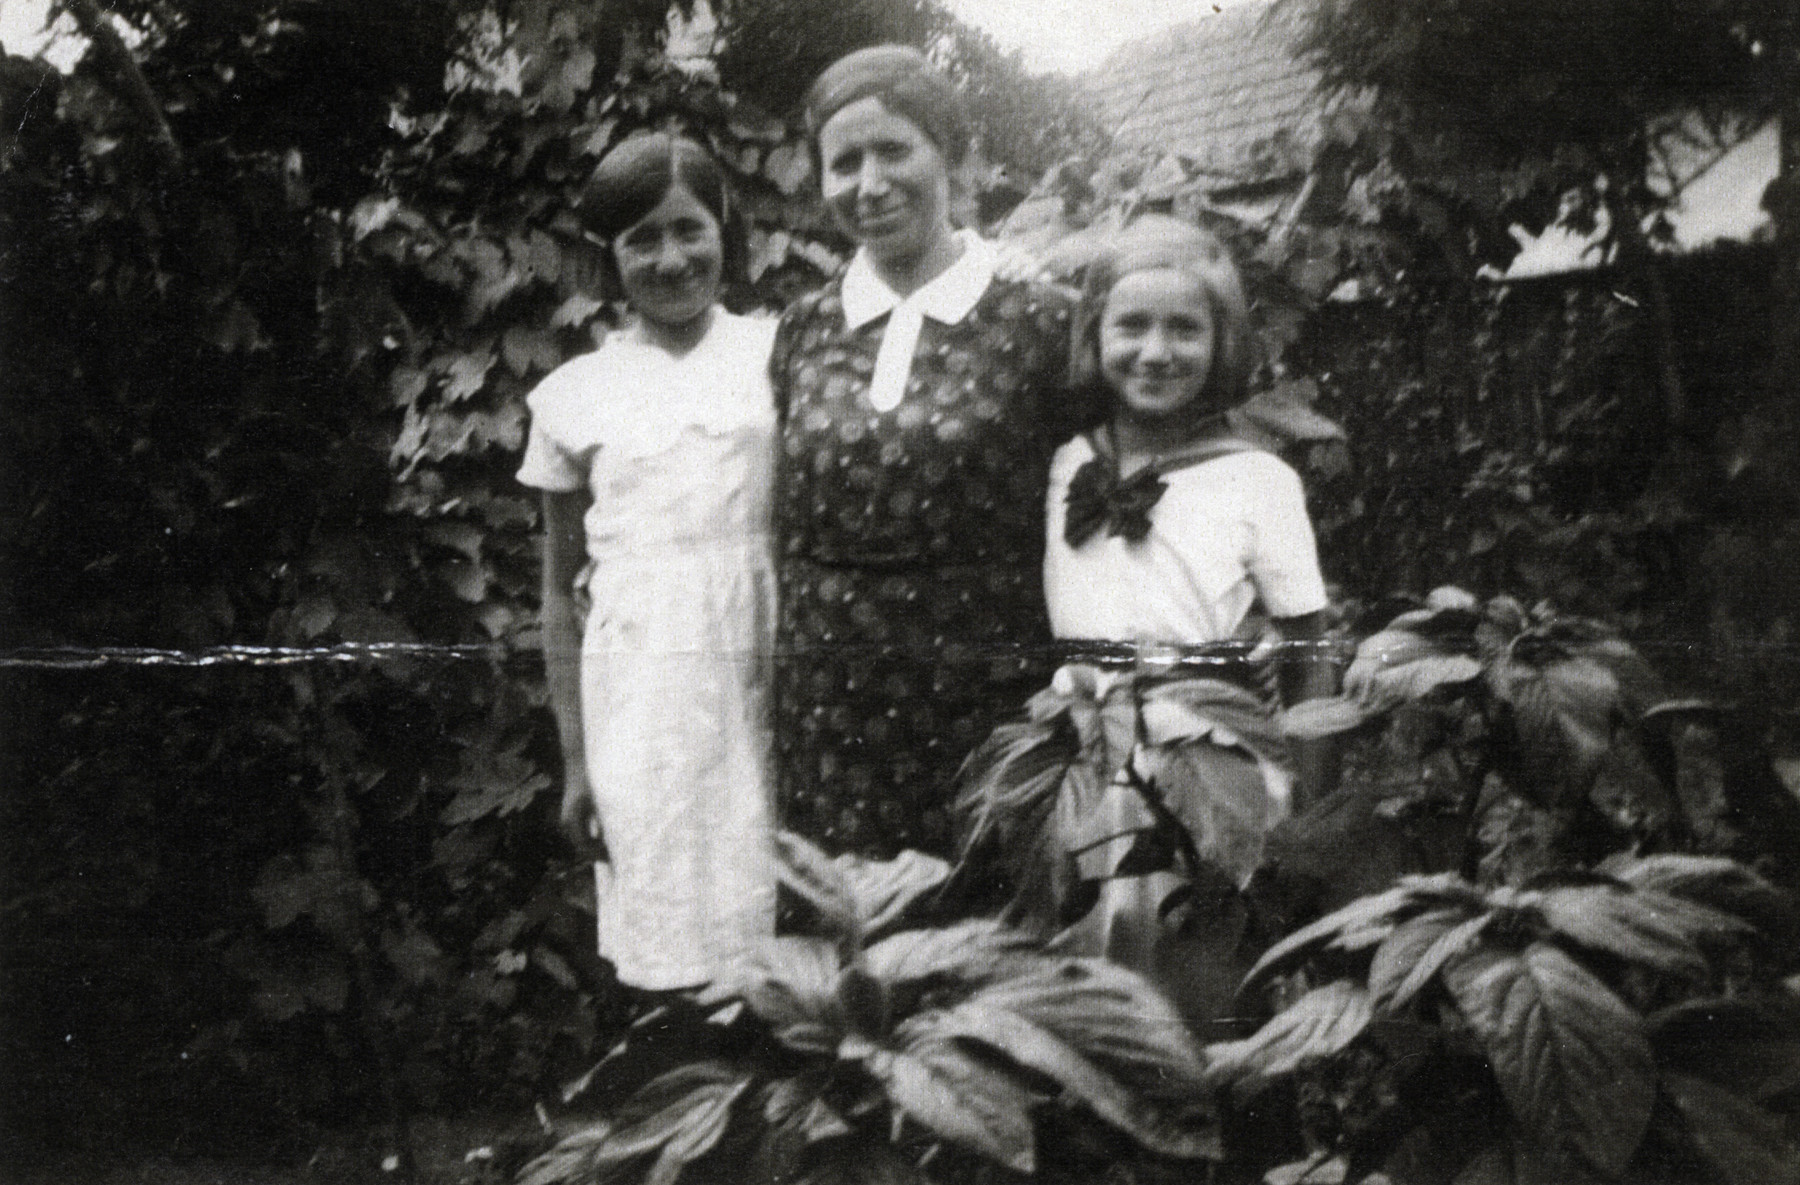 A mother and her two daughters pose in a wooded area near their home.   Pictured are mother Rosa Scharf and her daughters, Lili and Yehudit.